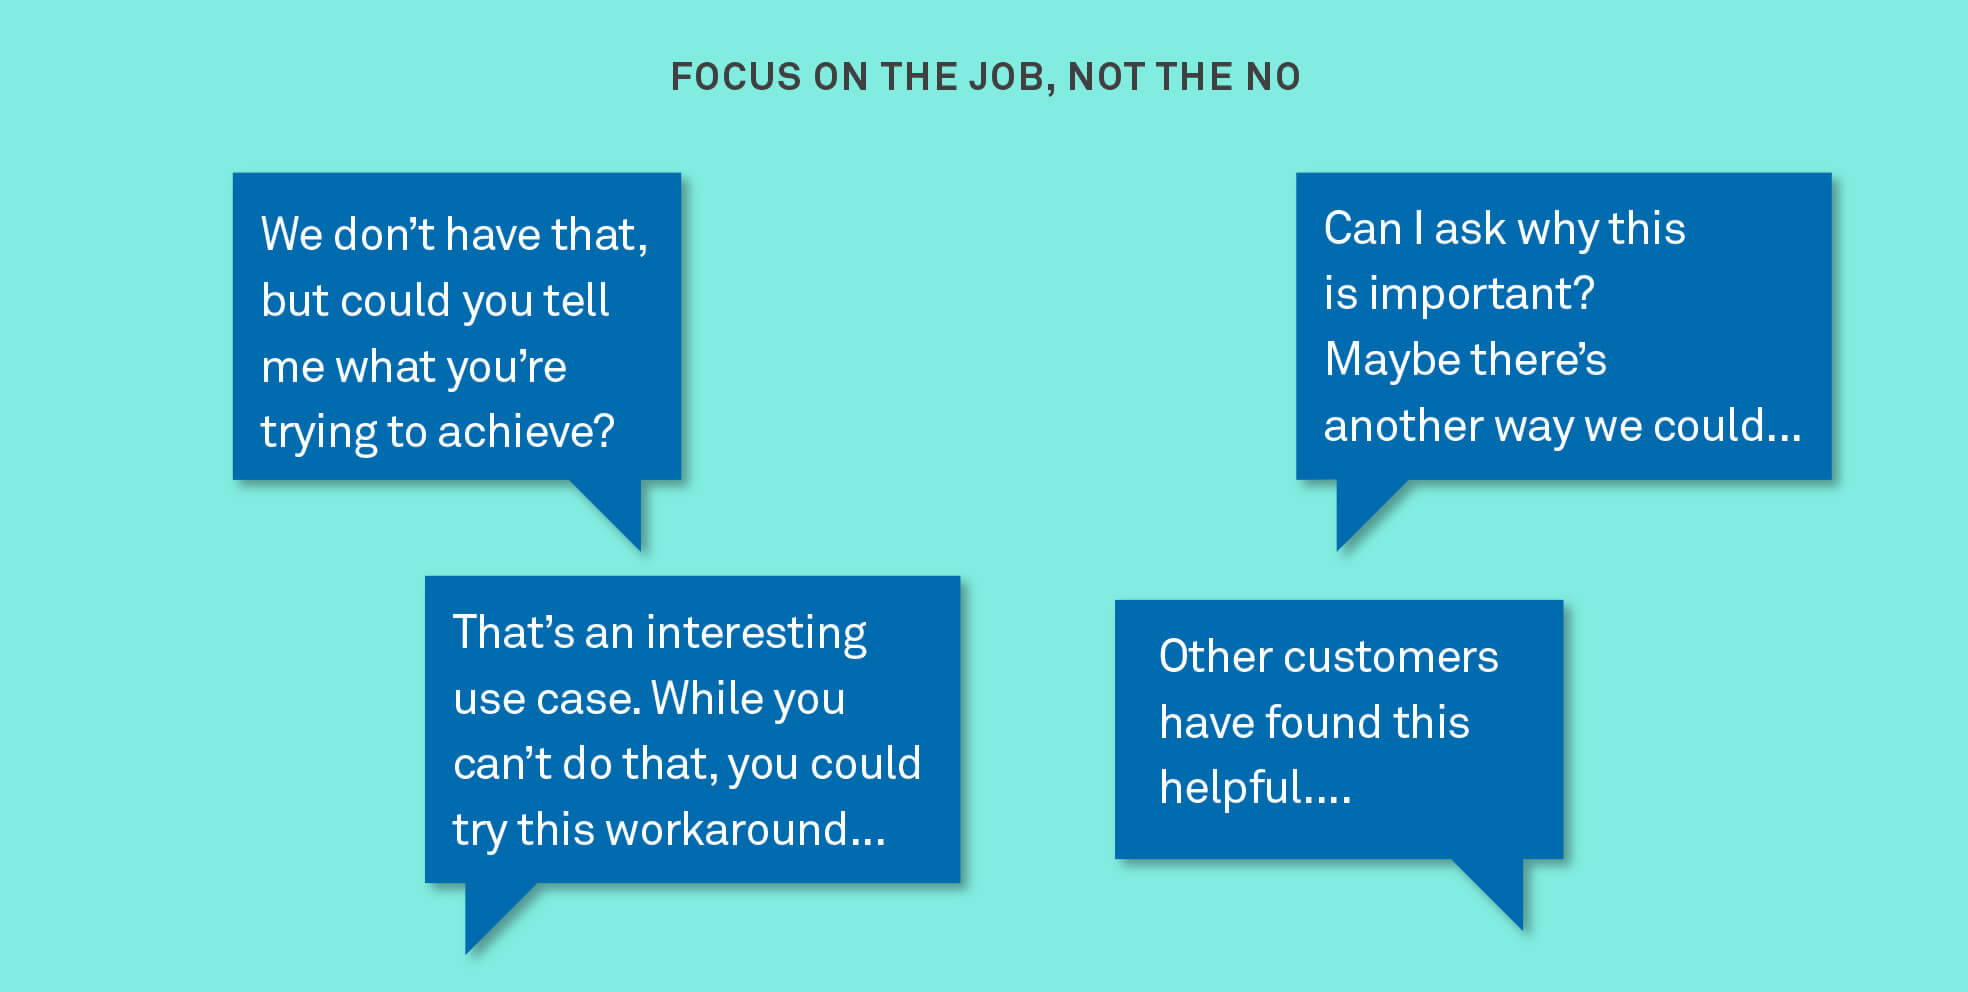 Examples of how to focus on the outcome the customer is trying to achieve